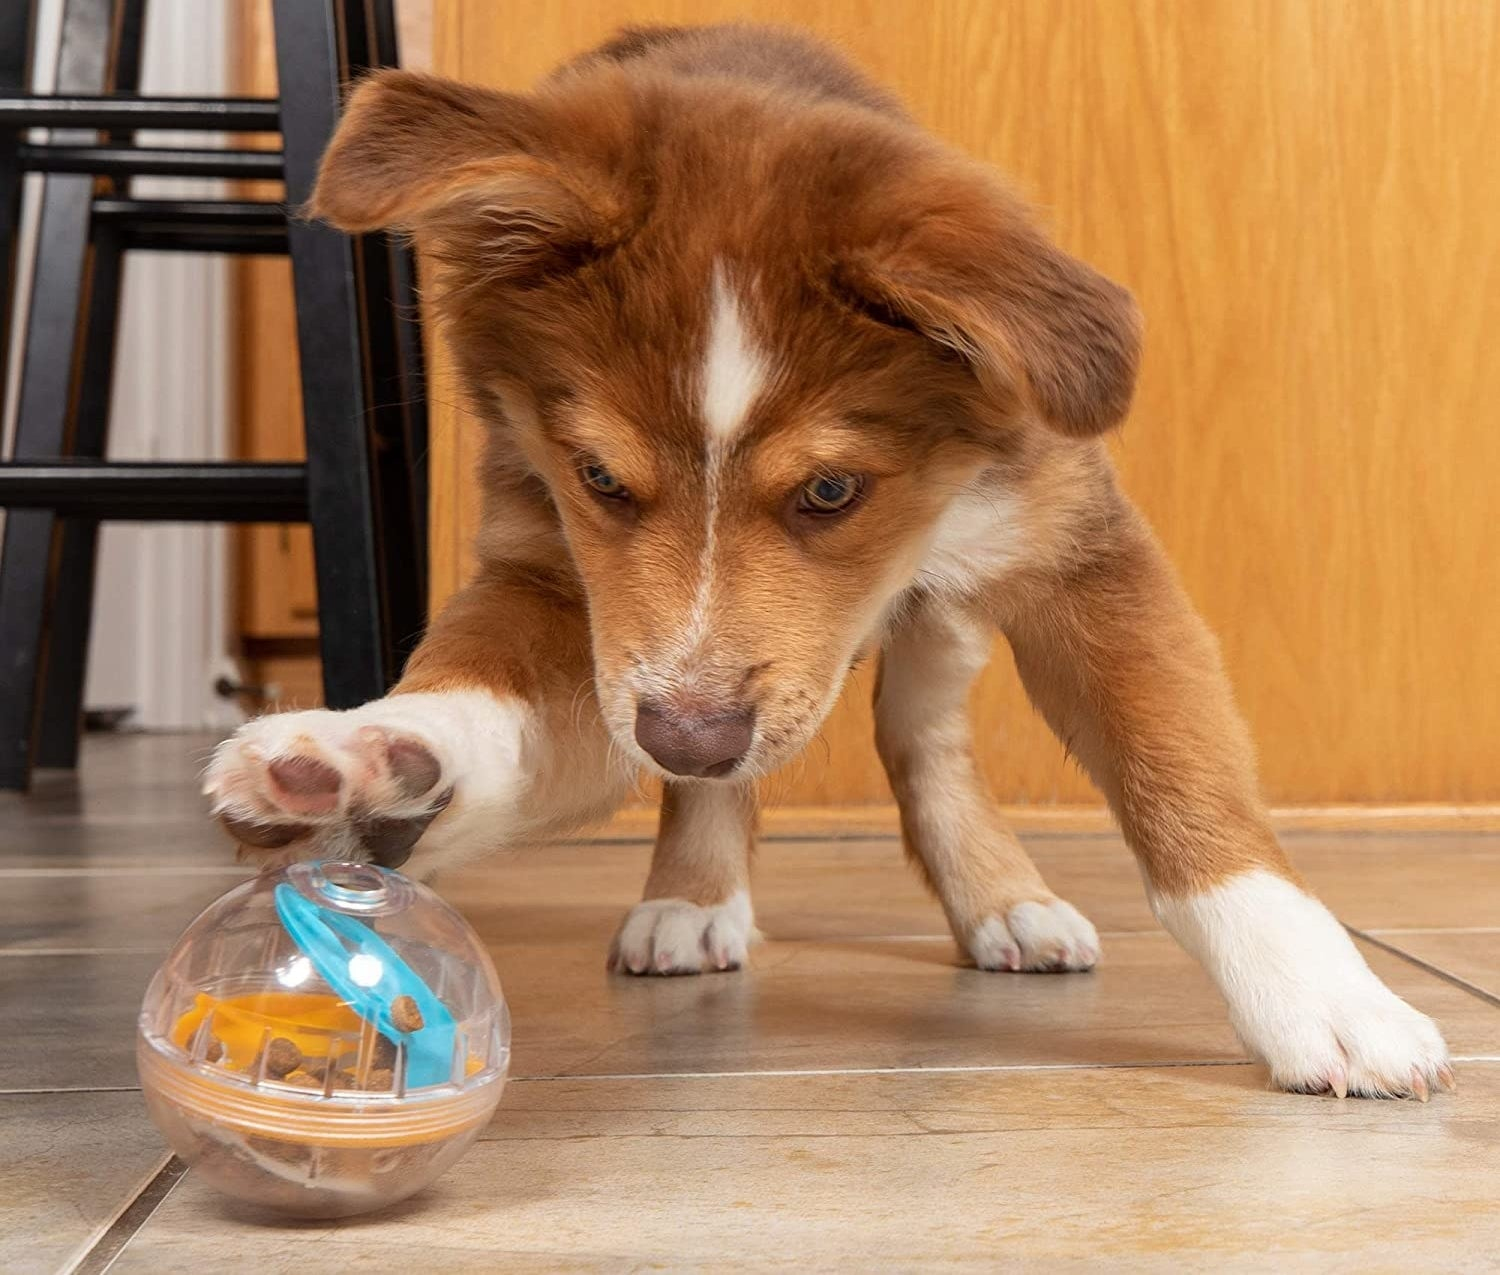 puppy playing with toy that has treats inside of it